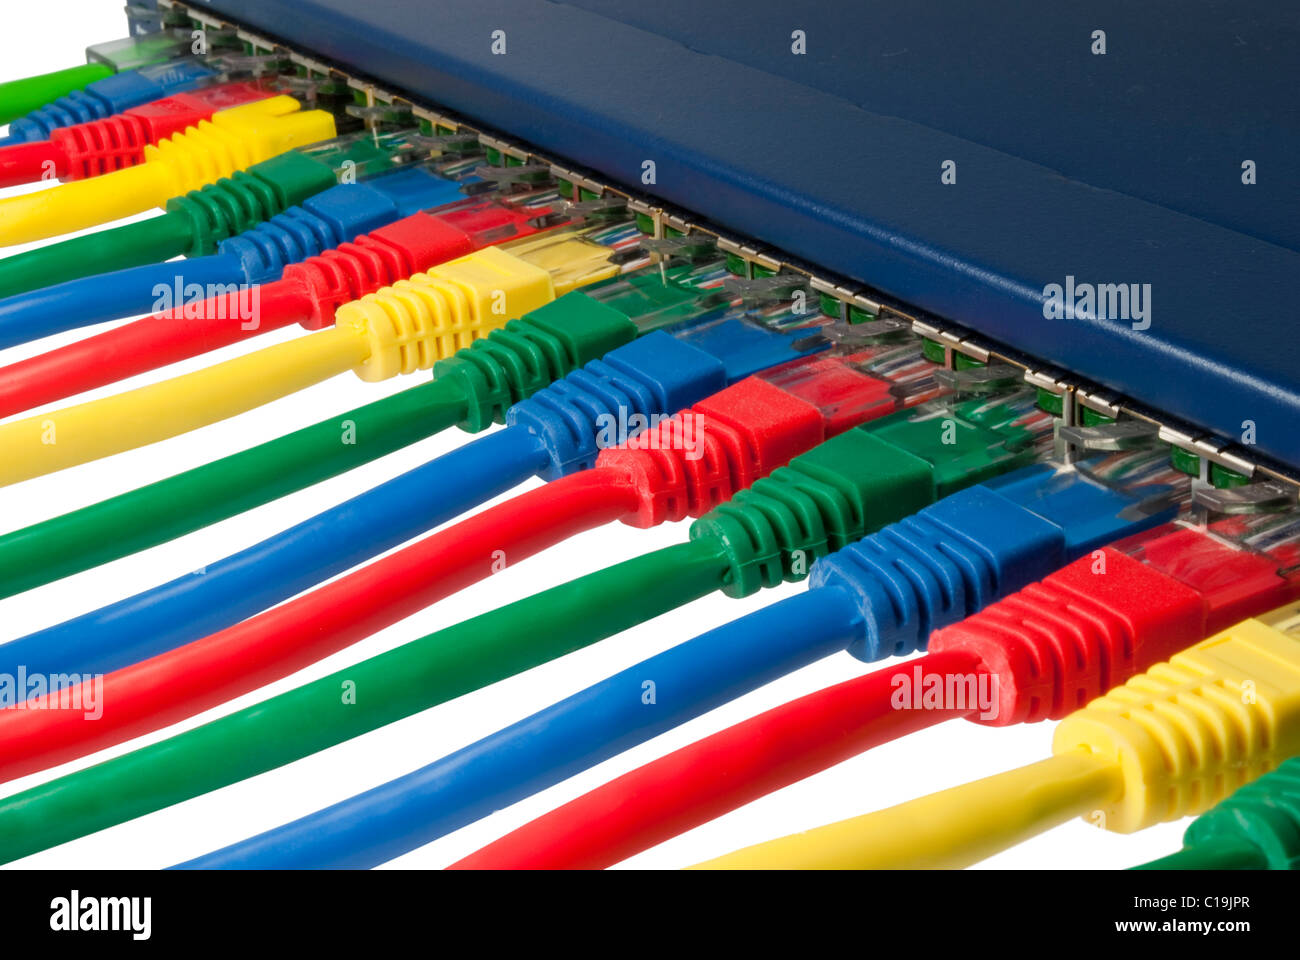 Multi colored rubber network cables attached to a blue router or switch isolated on white background - Stock Image